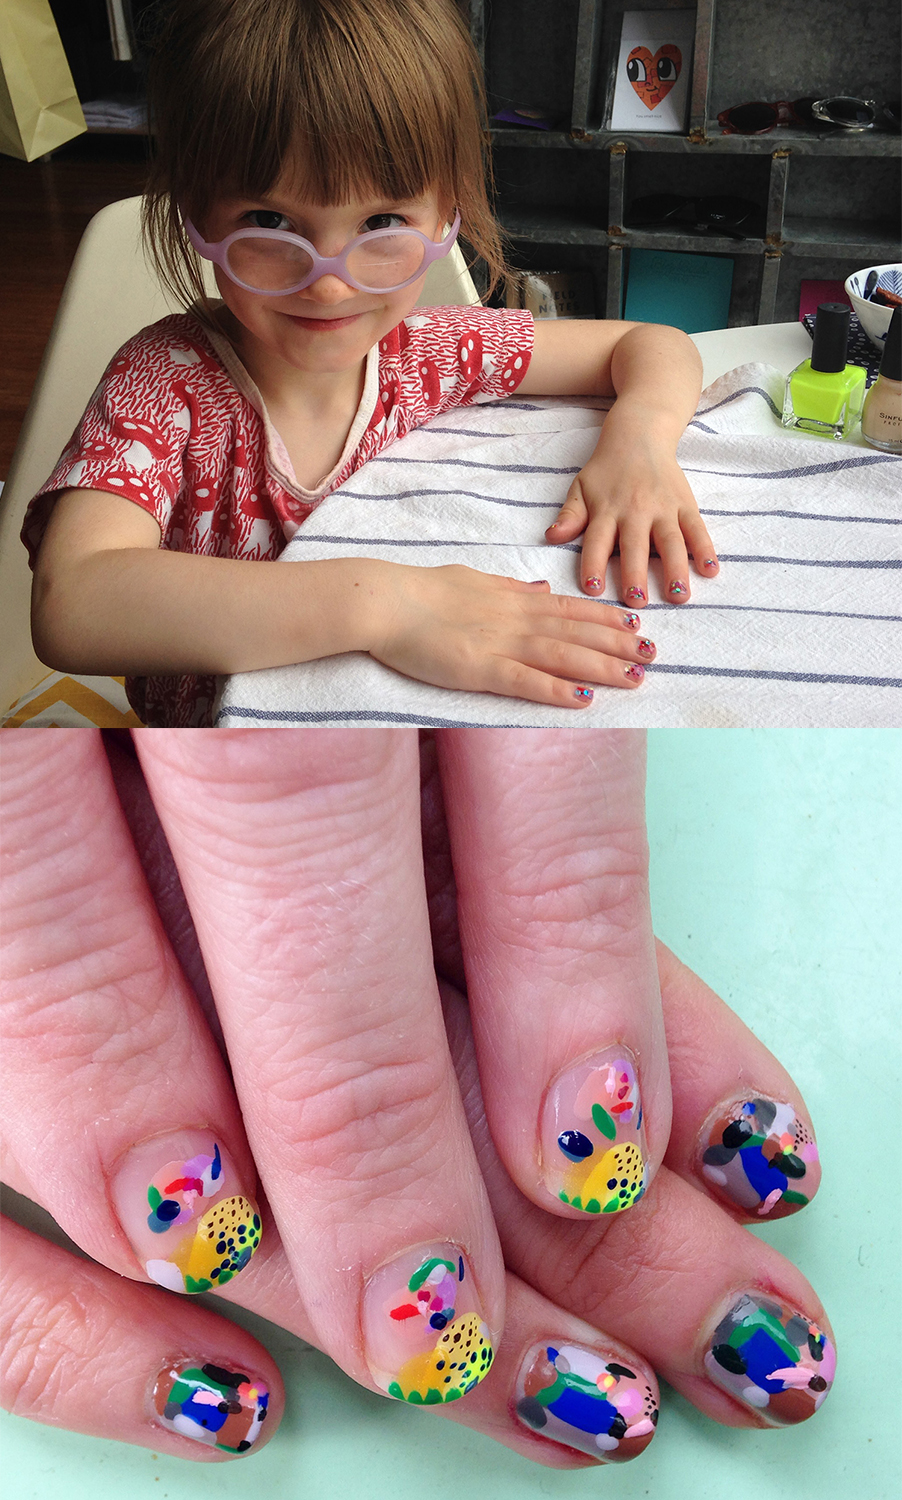 ART + FUNCTION + FANCY NAILS = THE MANY TALENTS OF HILLERY SPROATT ...